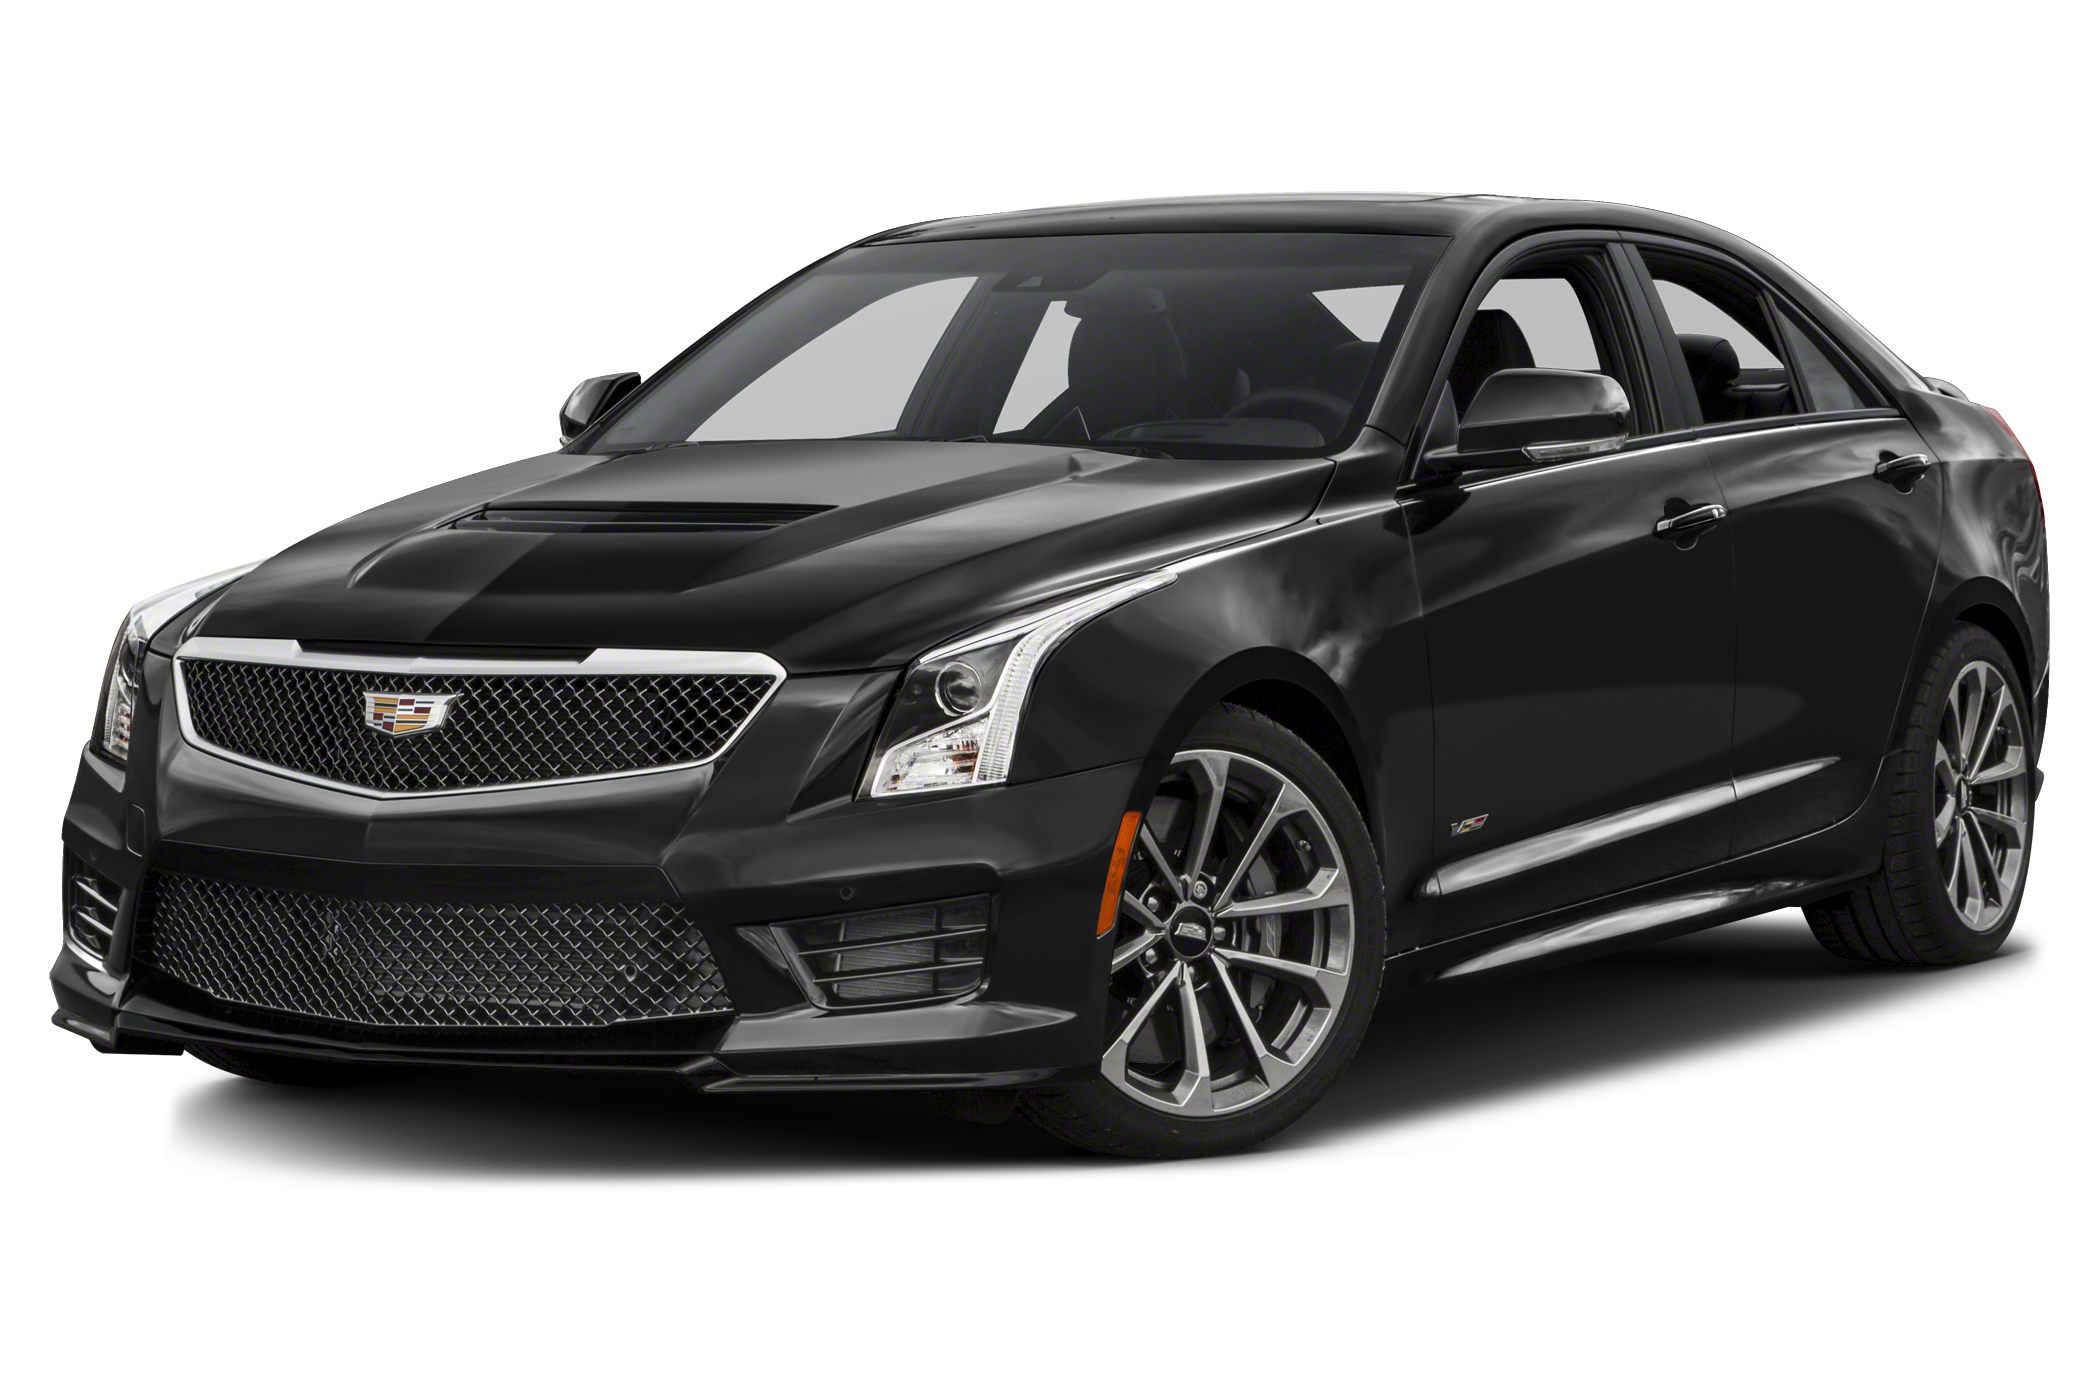 Cadillac Ats V For Sale >> 2018 Cadillac ATS-V Reviews, Specs and Prices | Cars.com